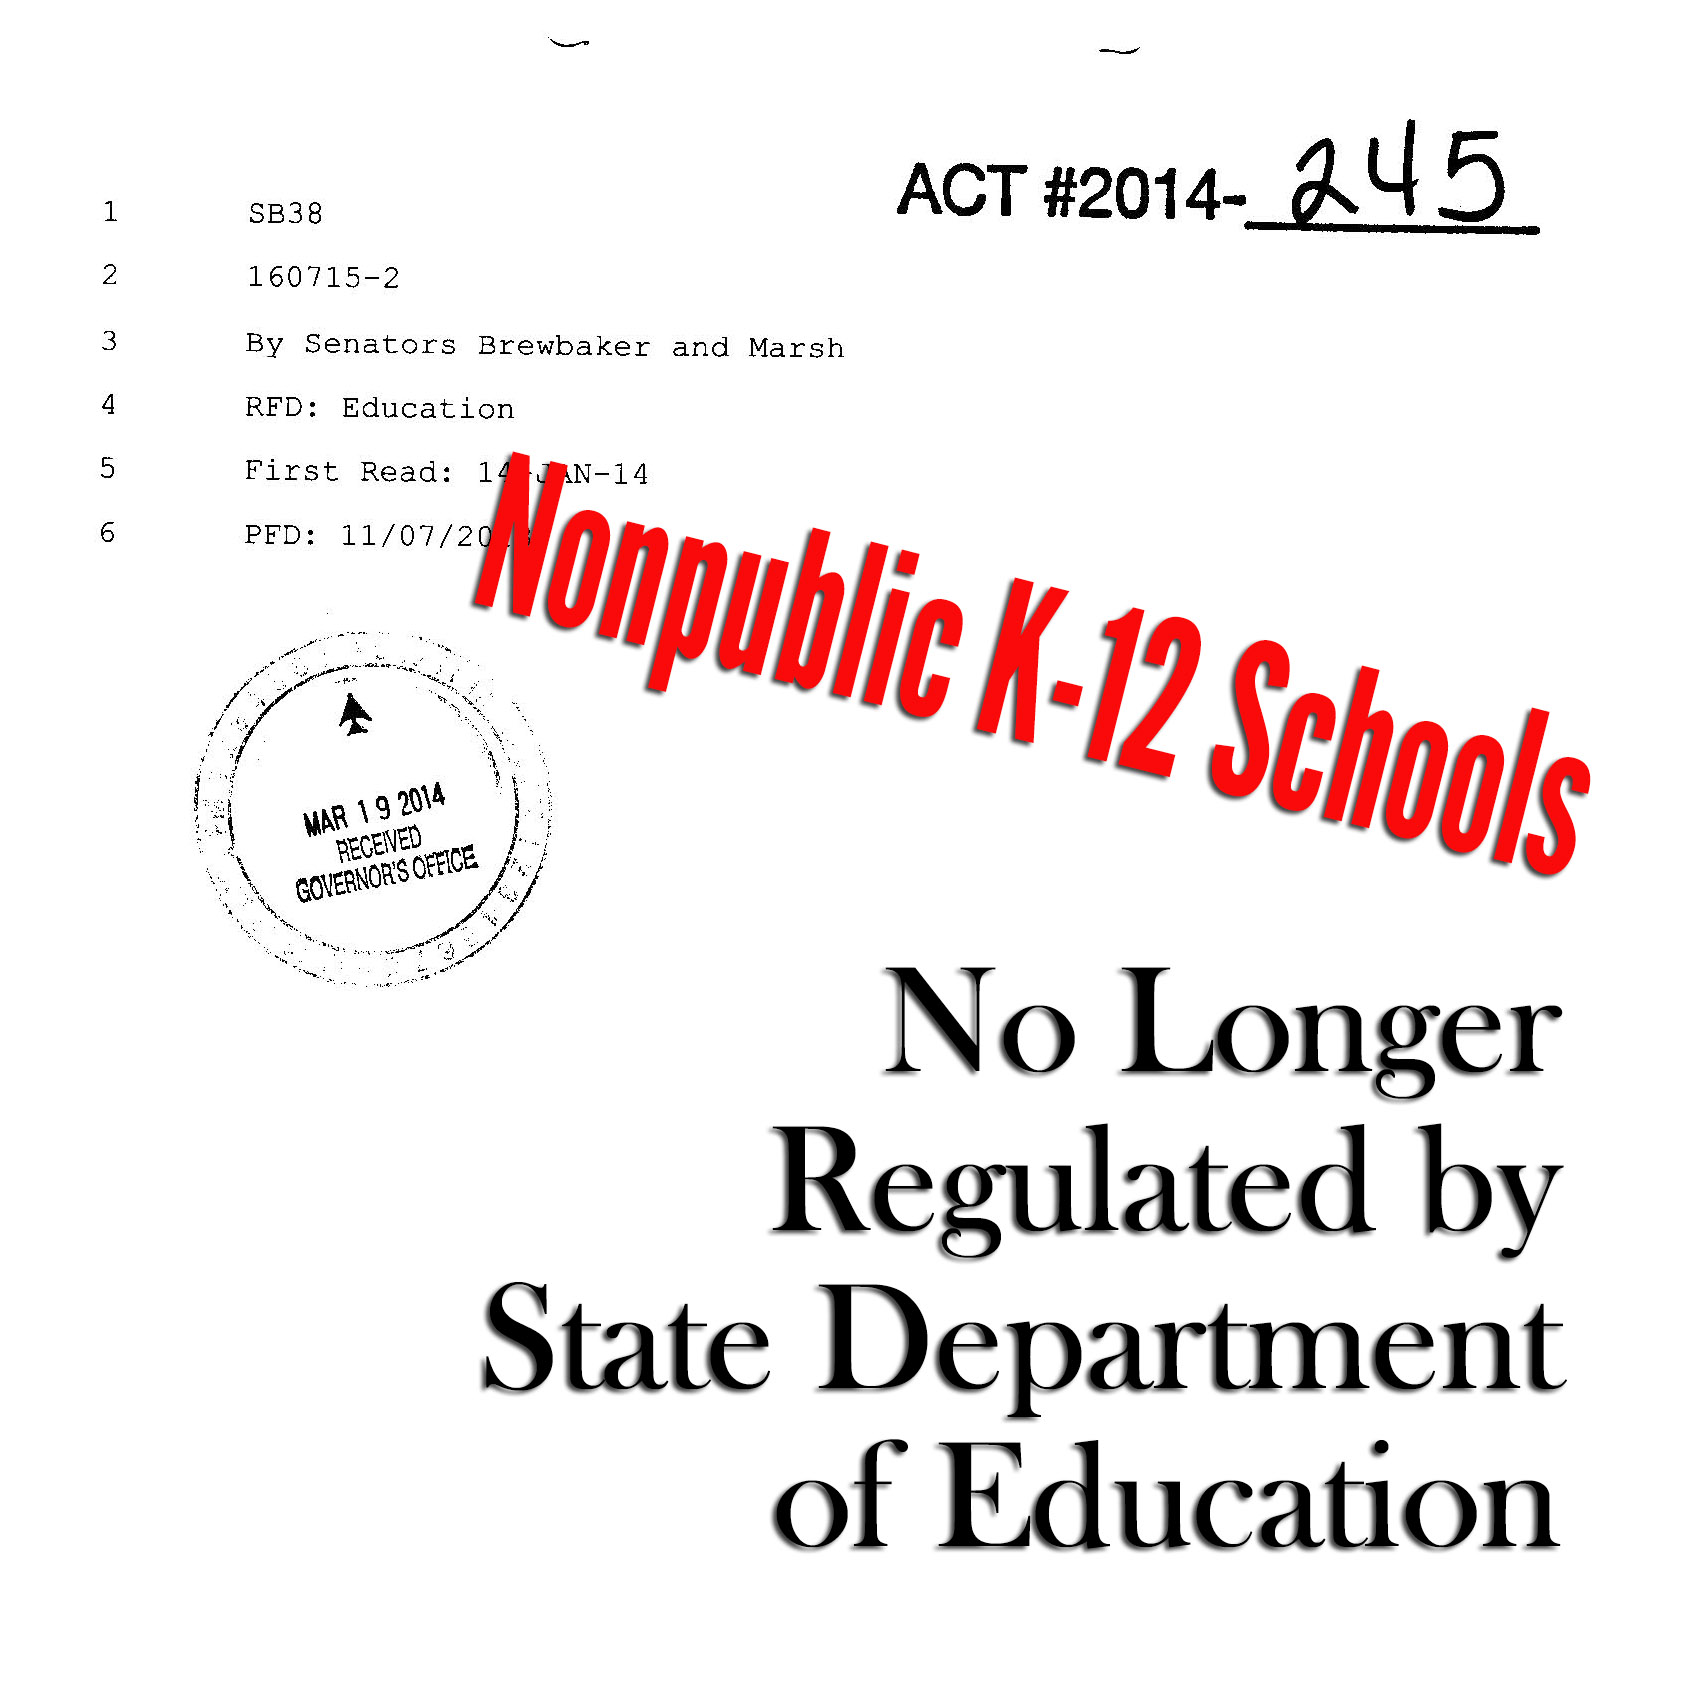 Alabama School Connection Nonpublic K 12 Schools No Longer